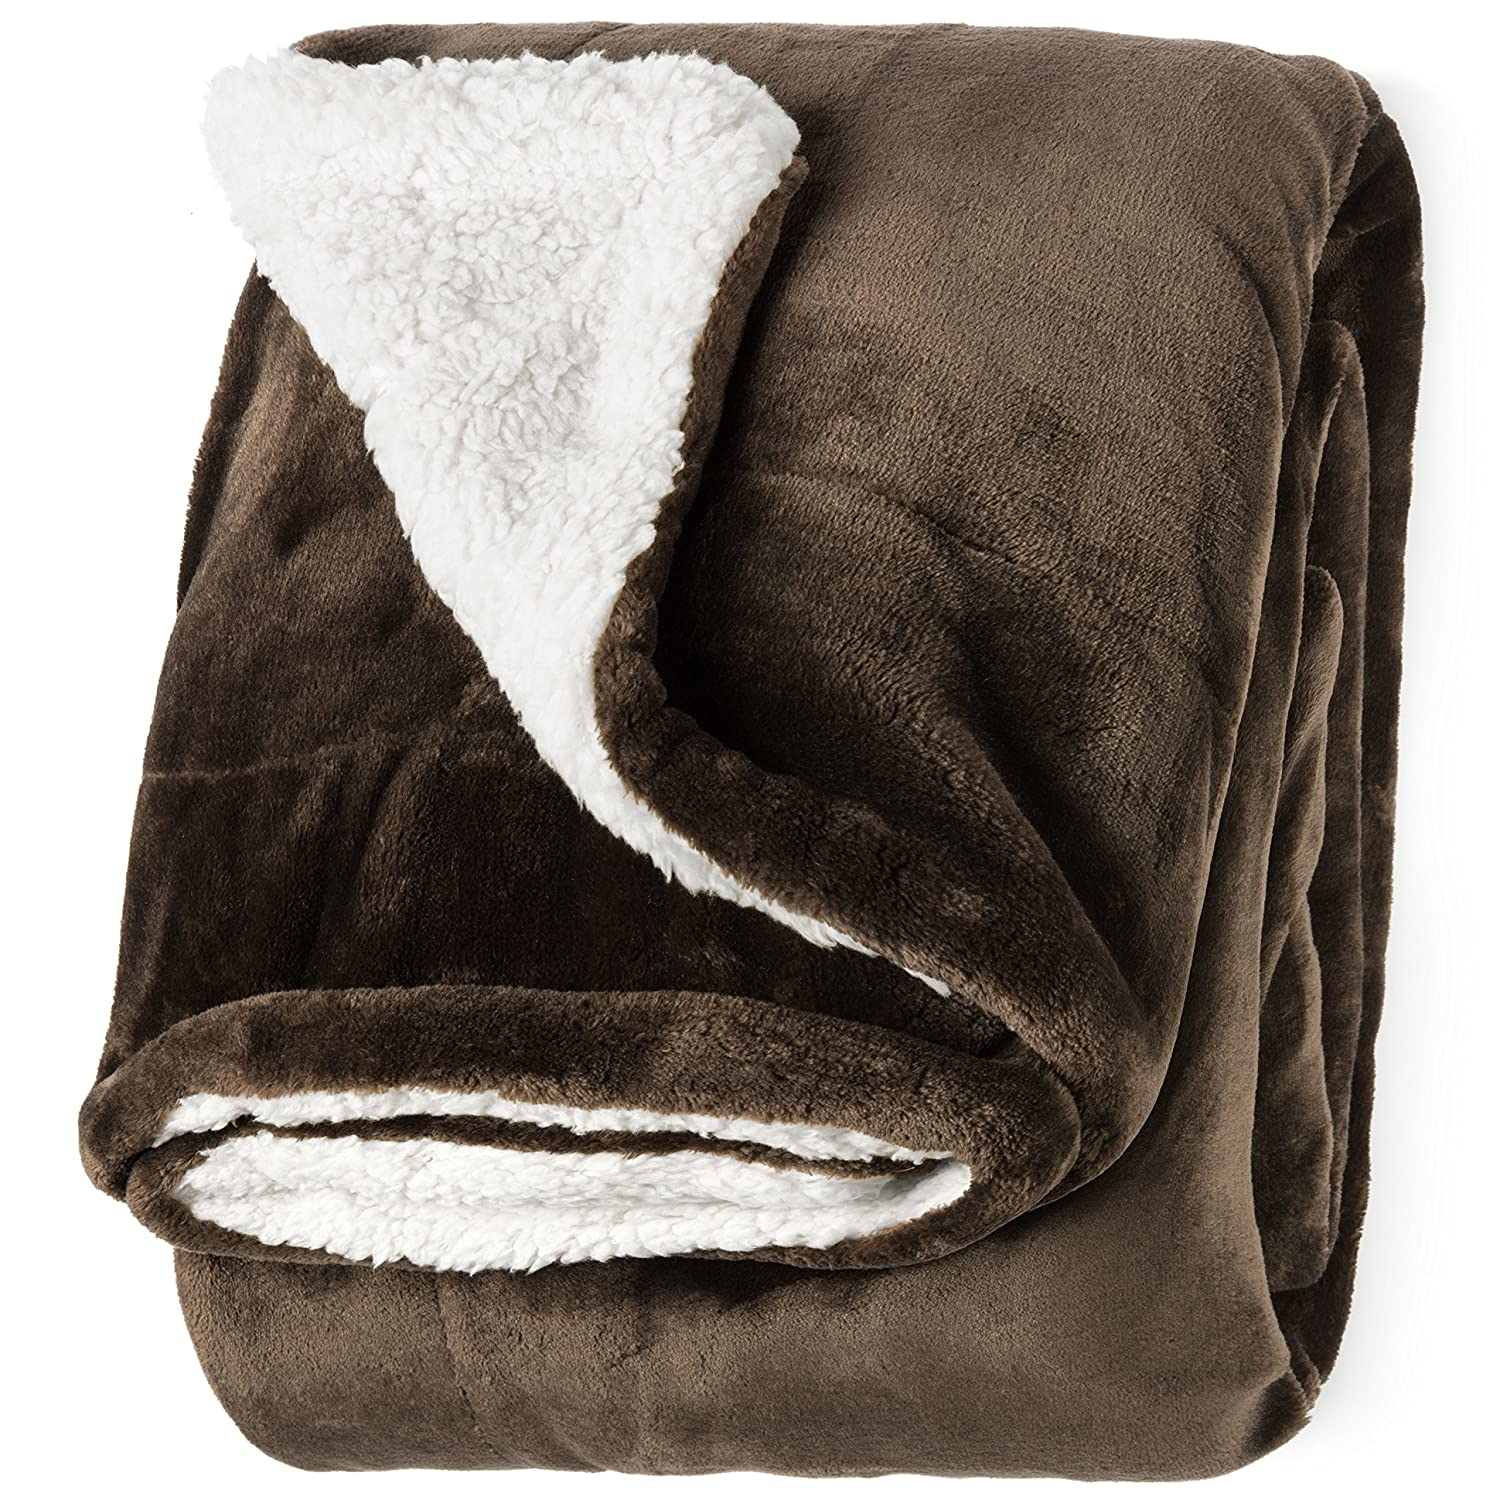 (Brown) - Life Comfort Ultimate Sherpa Throw - 150cm x 180cm (Brown) B014X5E4DG ブラウン 60\